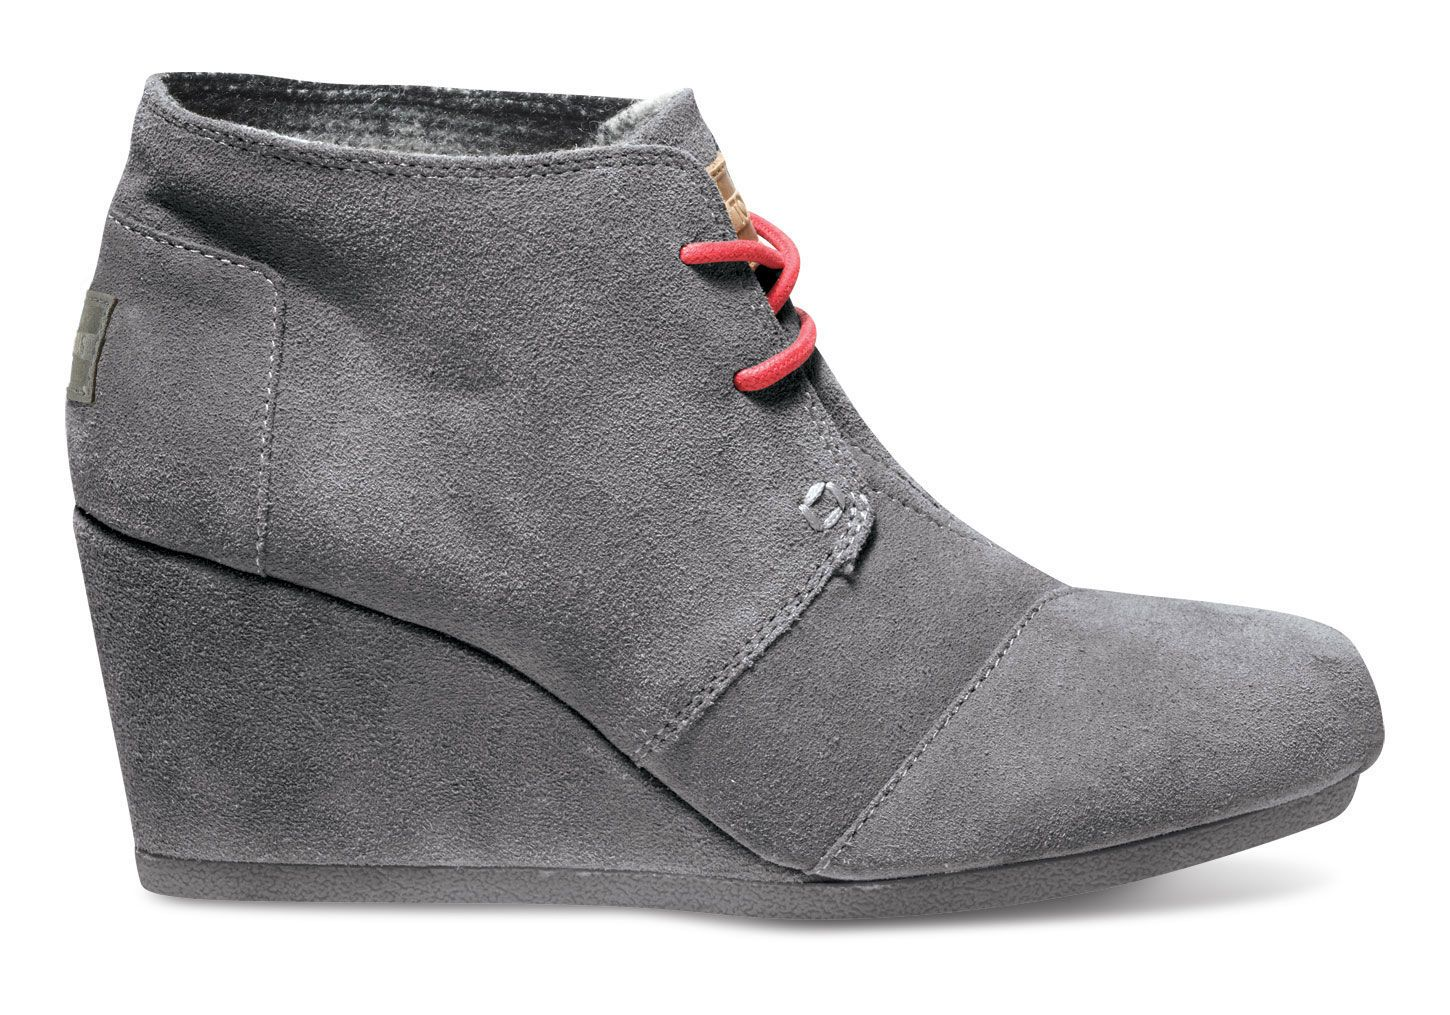 73dce4870235 On our back to school list  TOMS Charcoal Suede Desert Wedge with accent  lacing.